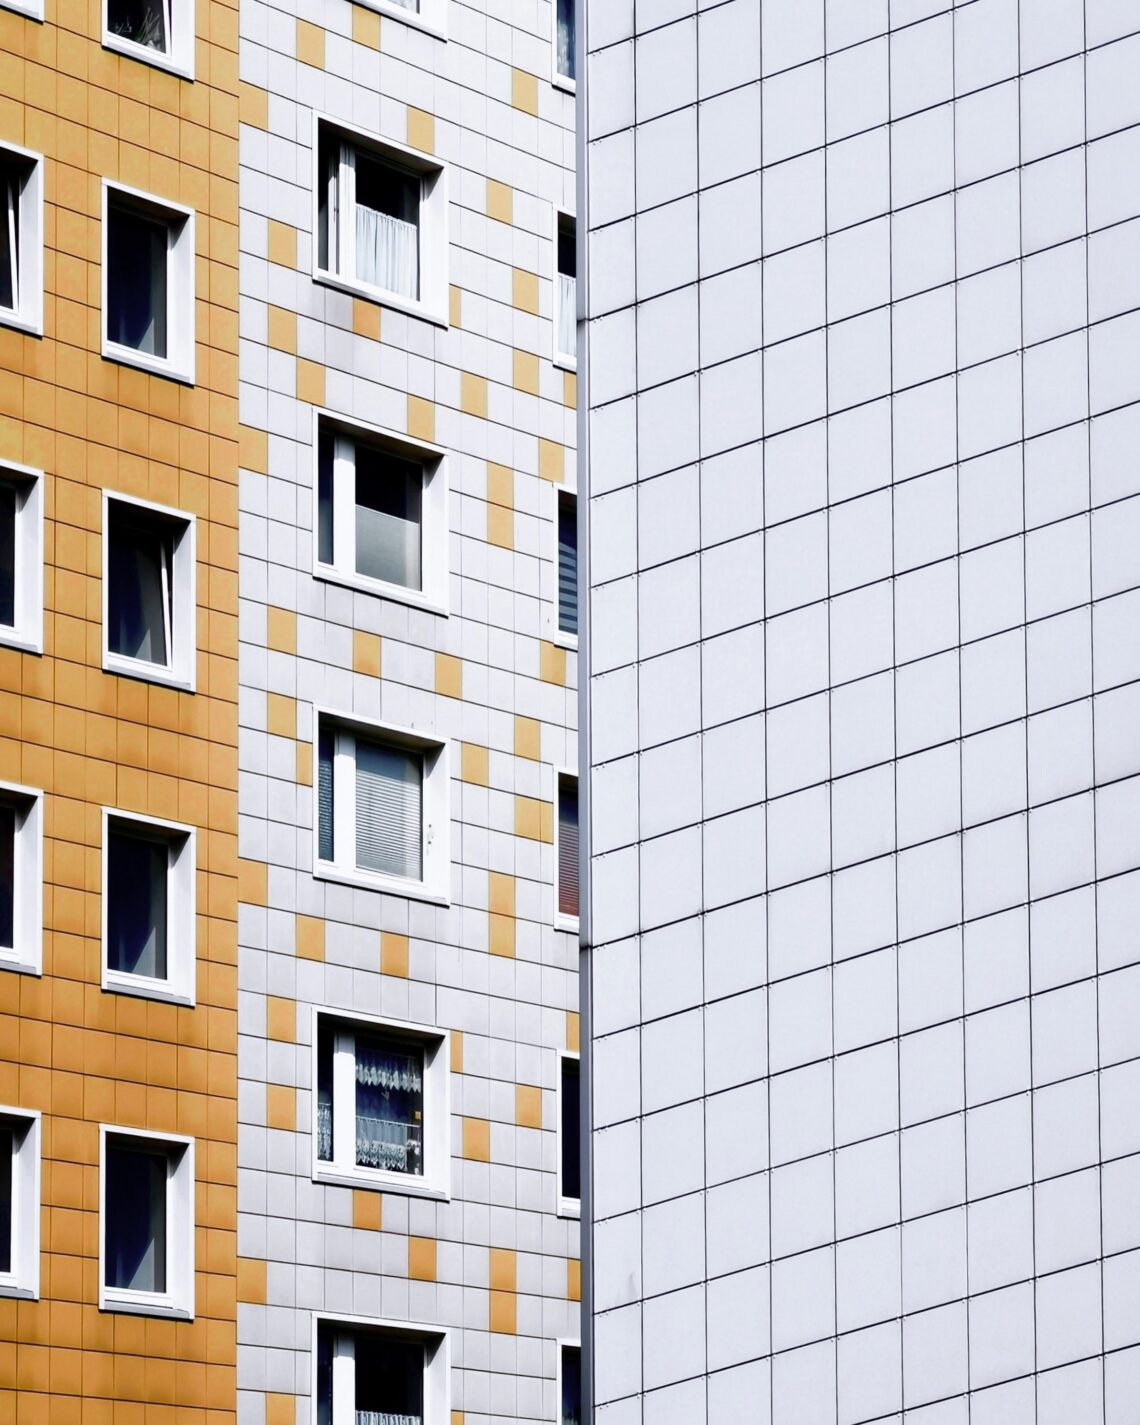 renovated yellow & white prefabricated block construction in the East of Berlin